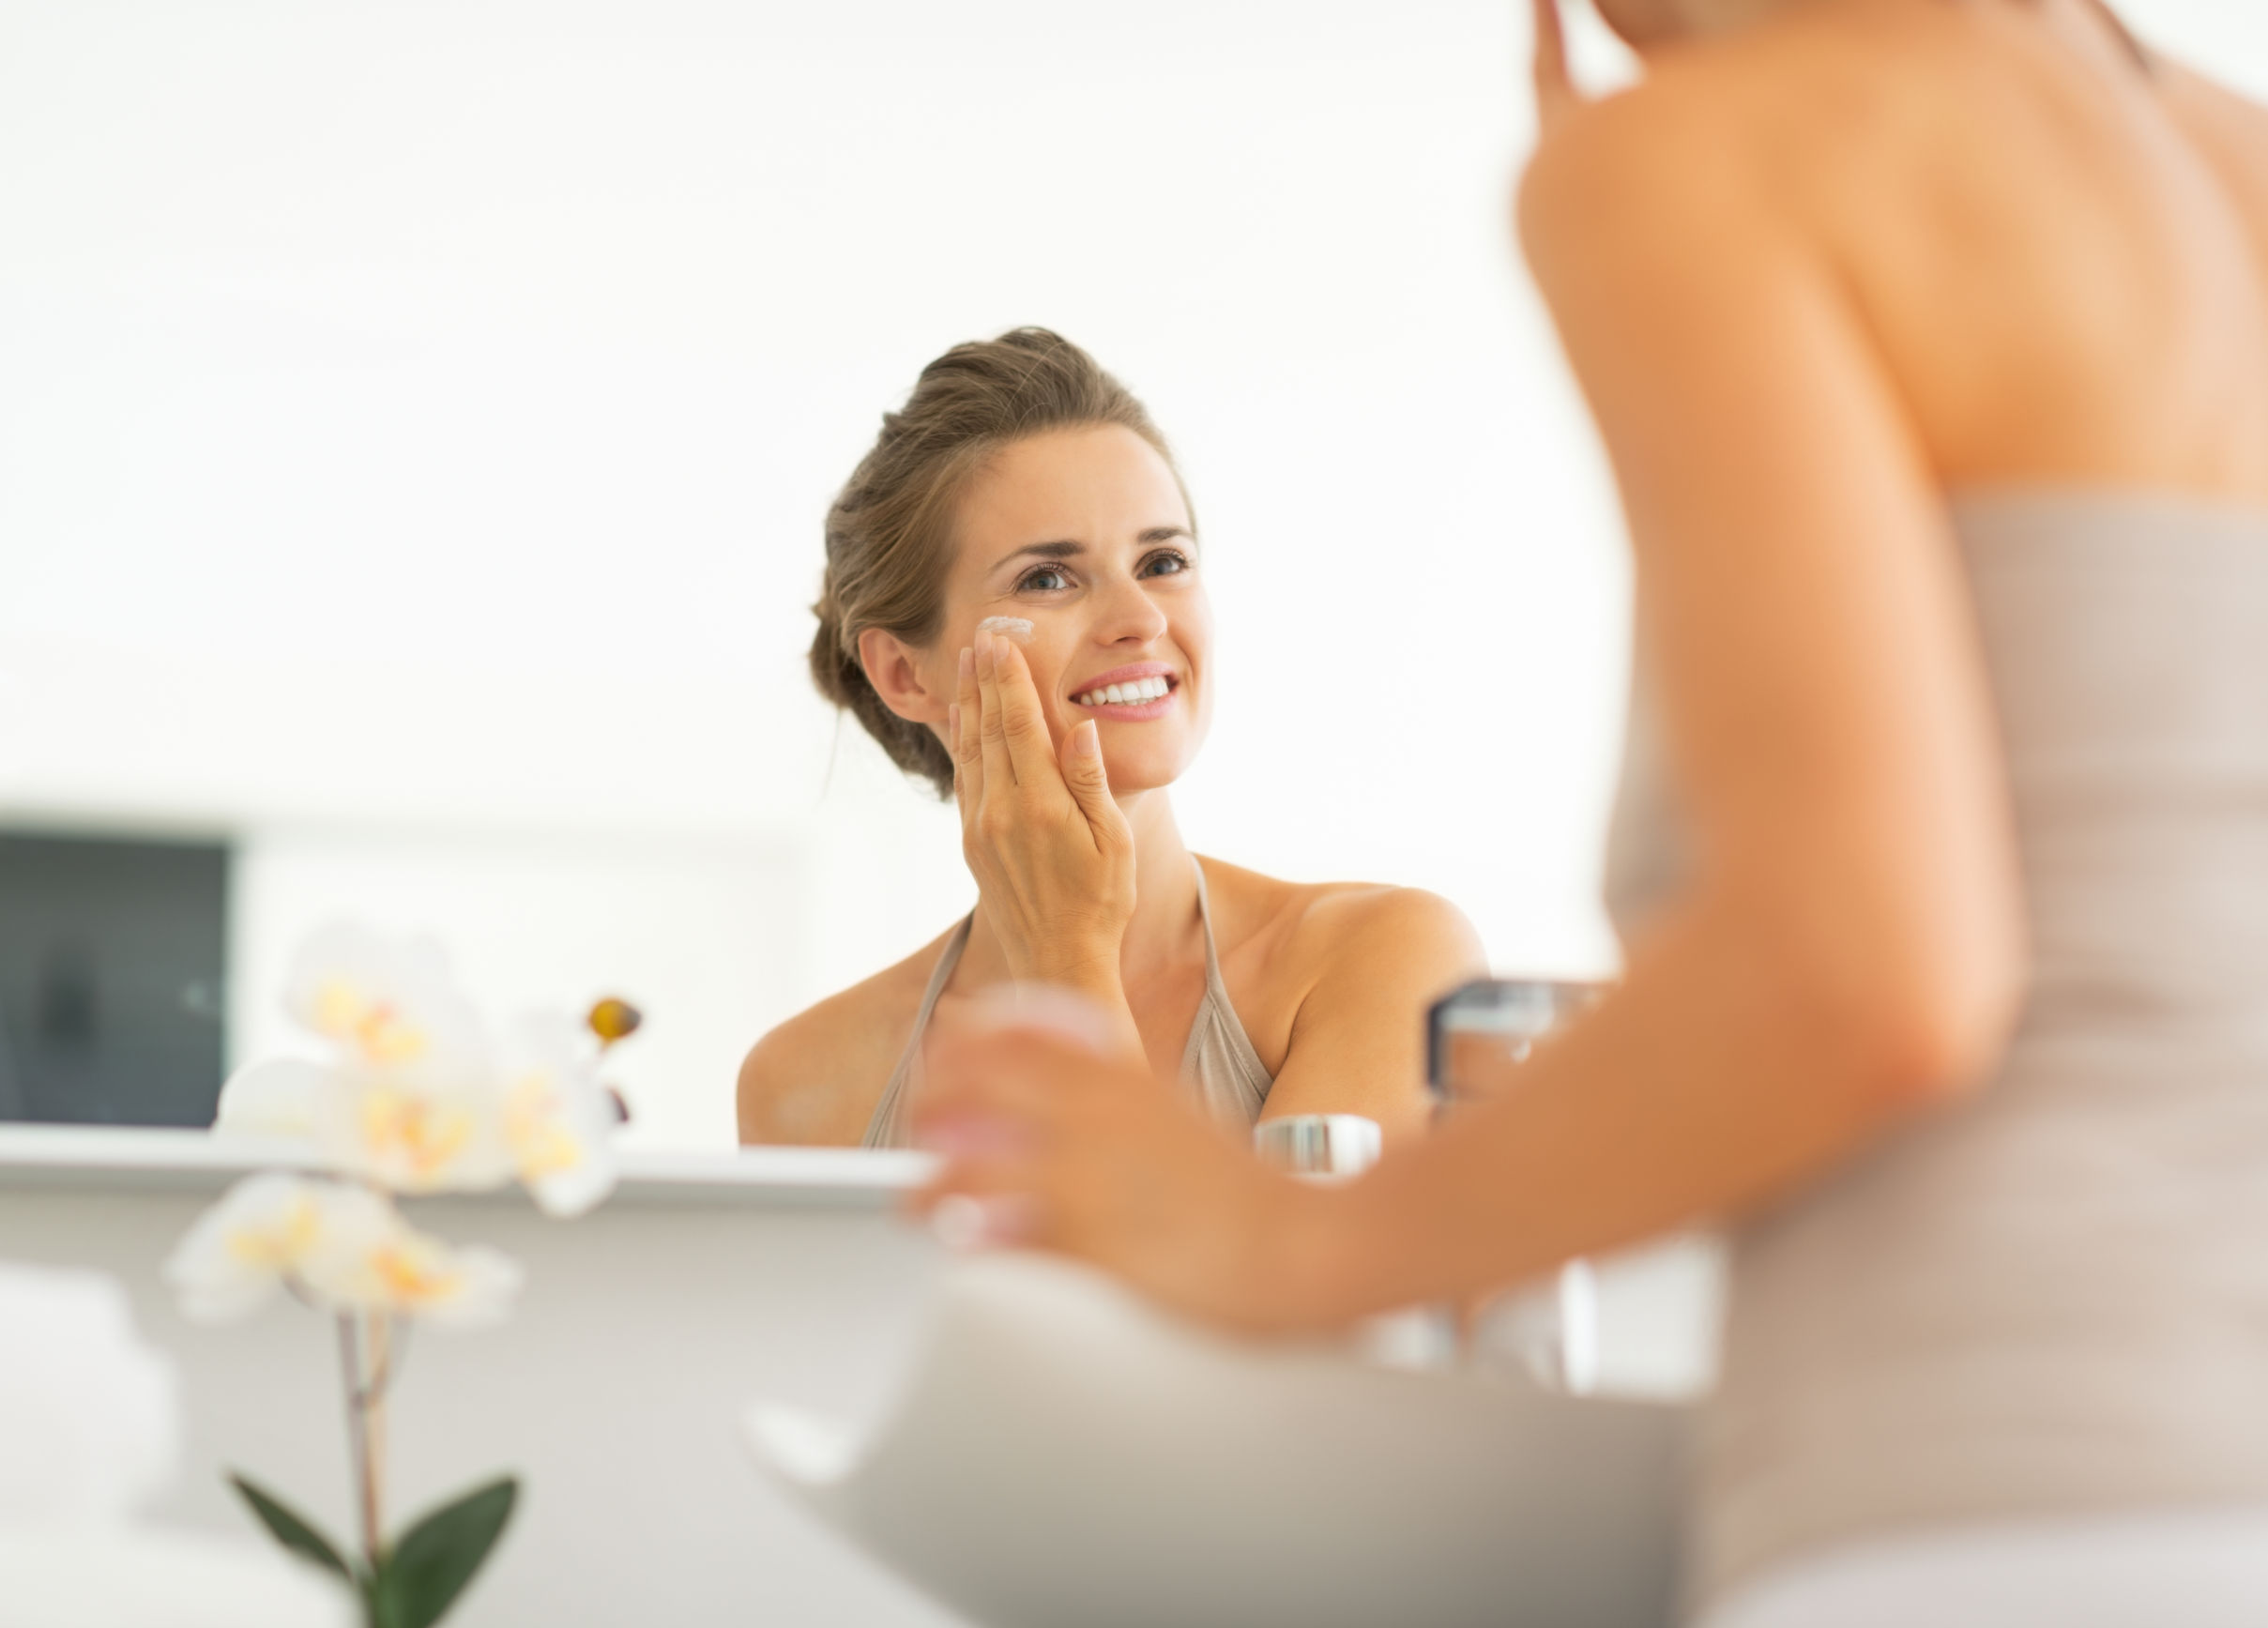 29004541 - happy young woman applying cream in bathroom